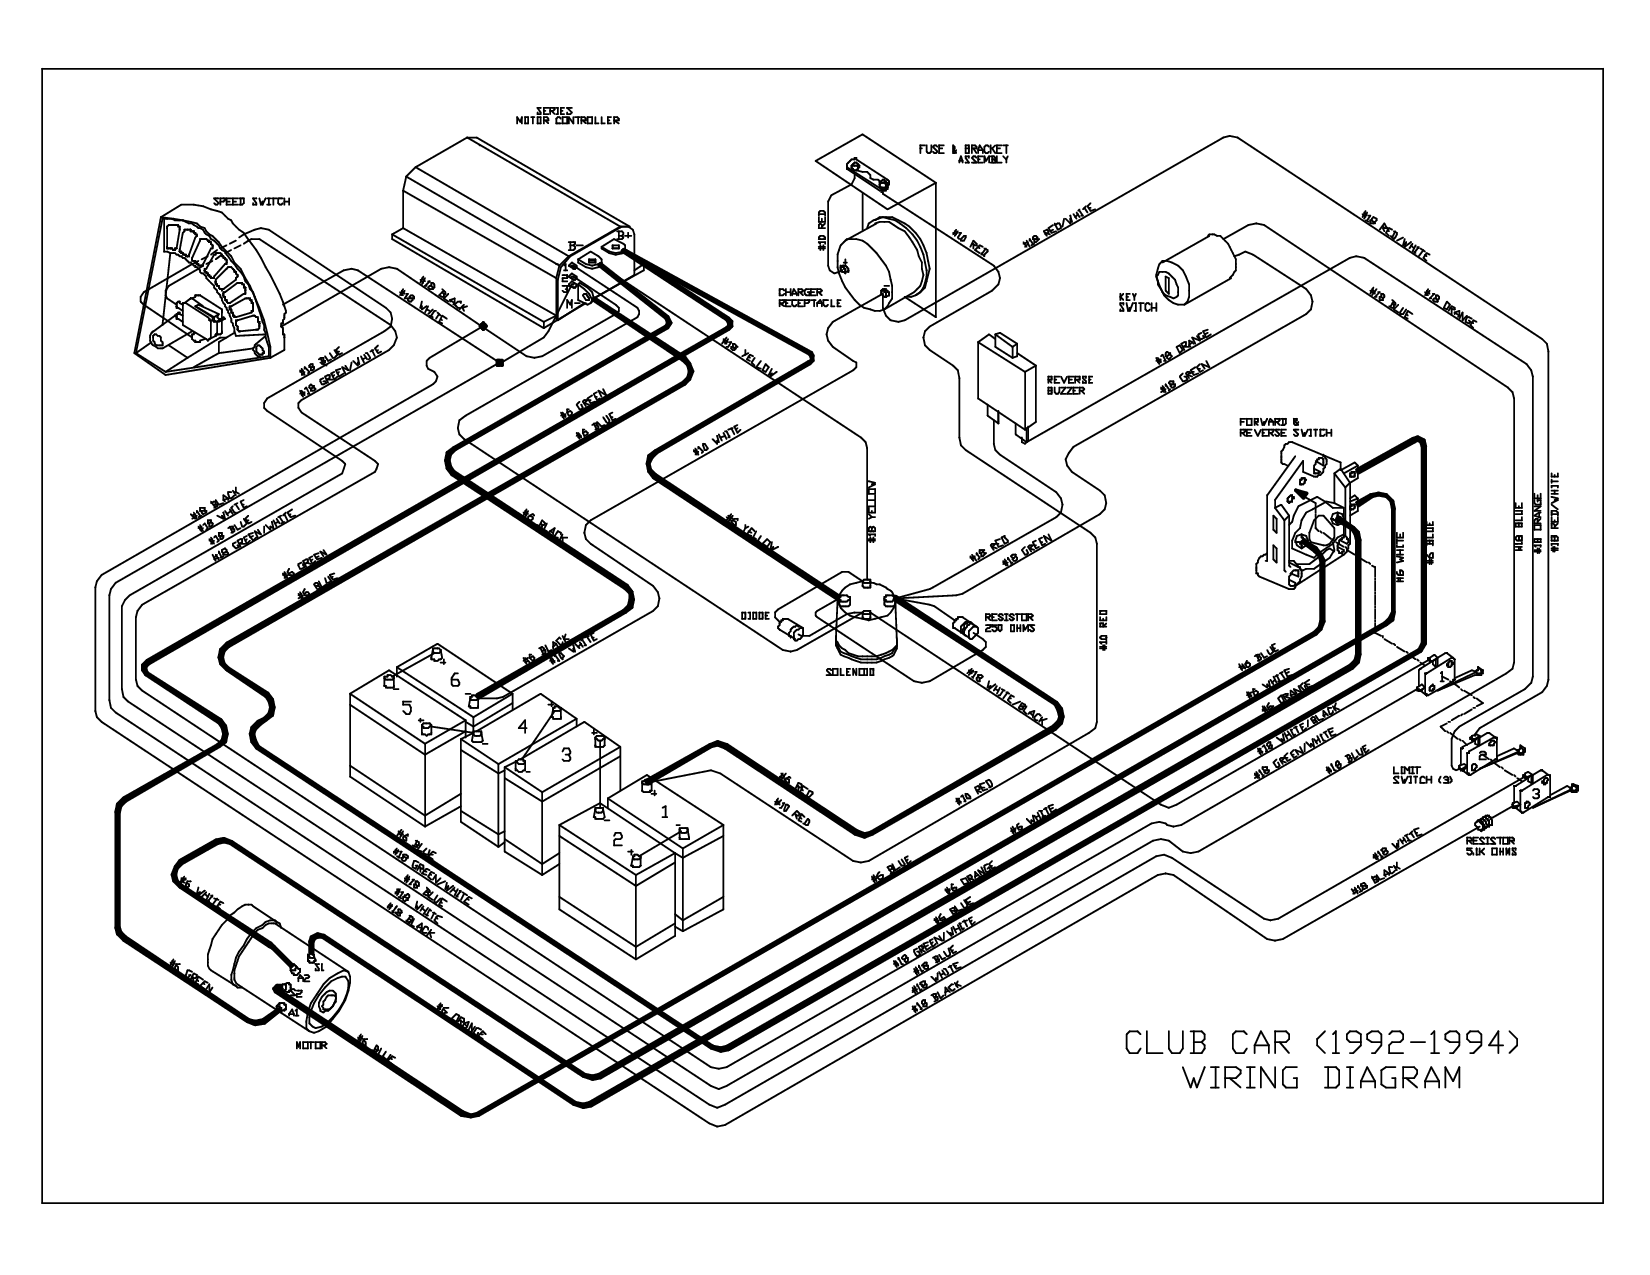 Par Car Wiring Diagram from i.pinimg.com